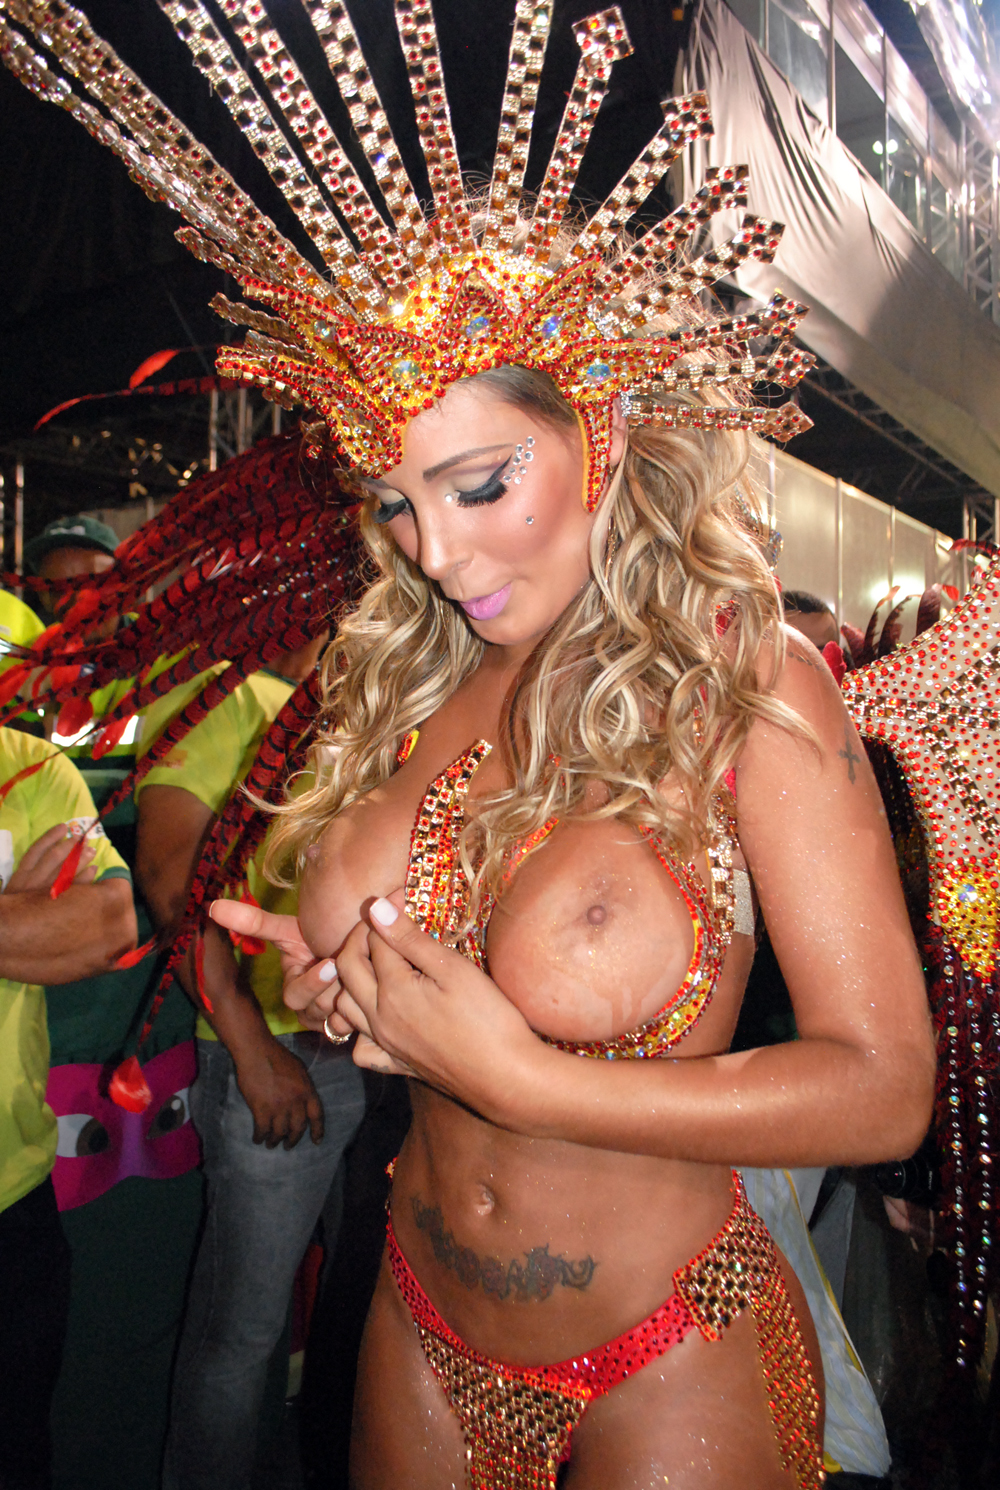 Andressa Urach posing almost topless in a carnival and showing off her big boobs